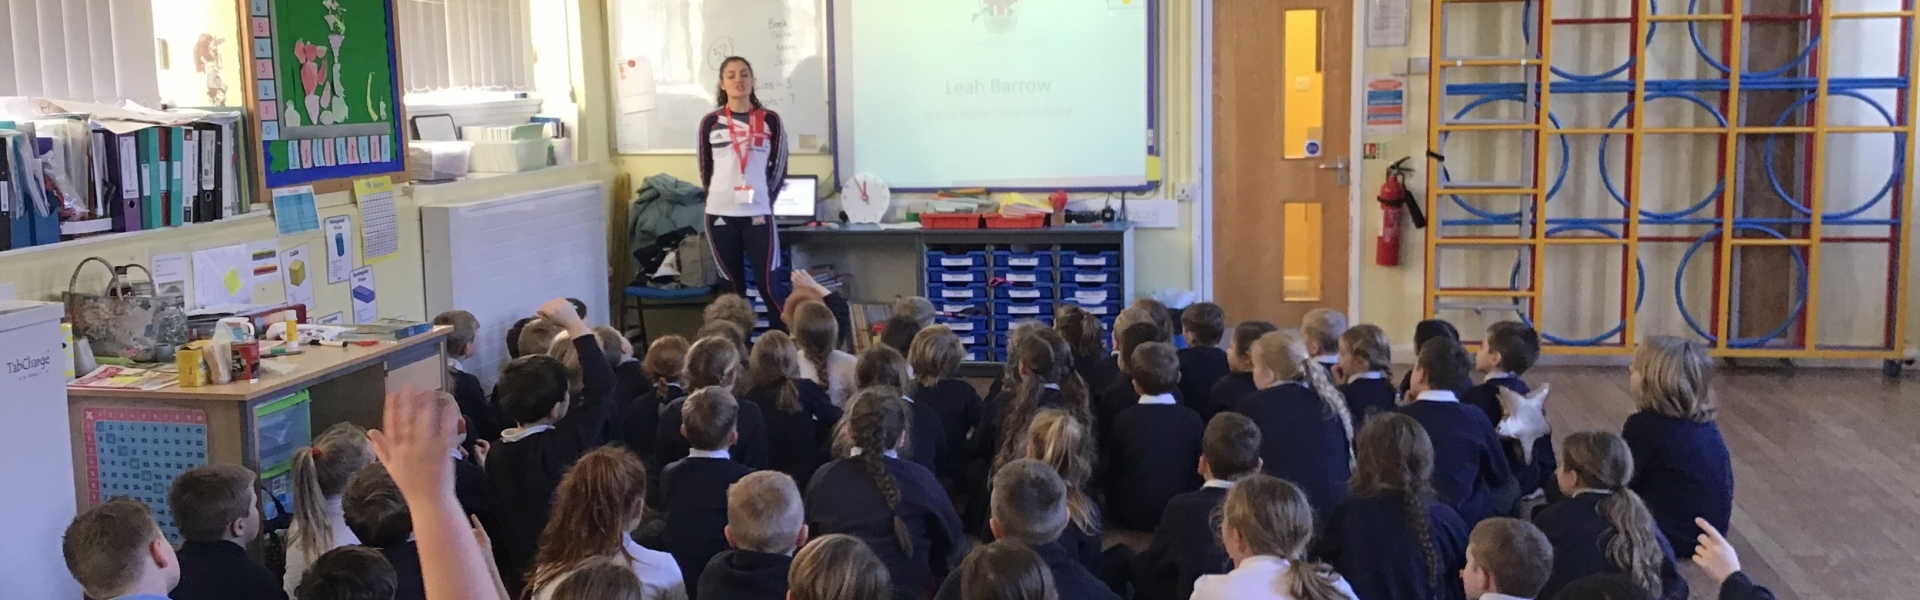 Leah barrow, GB athlete visits school